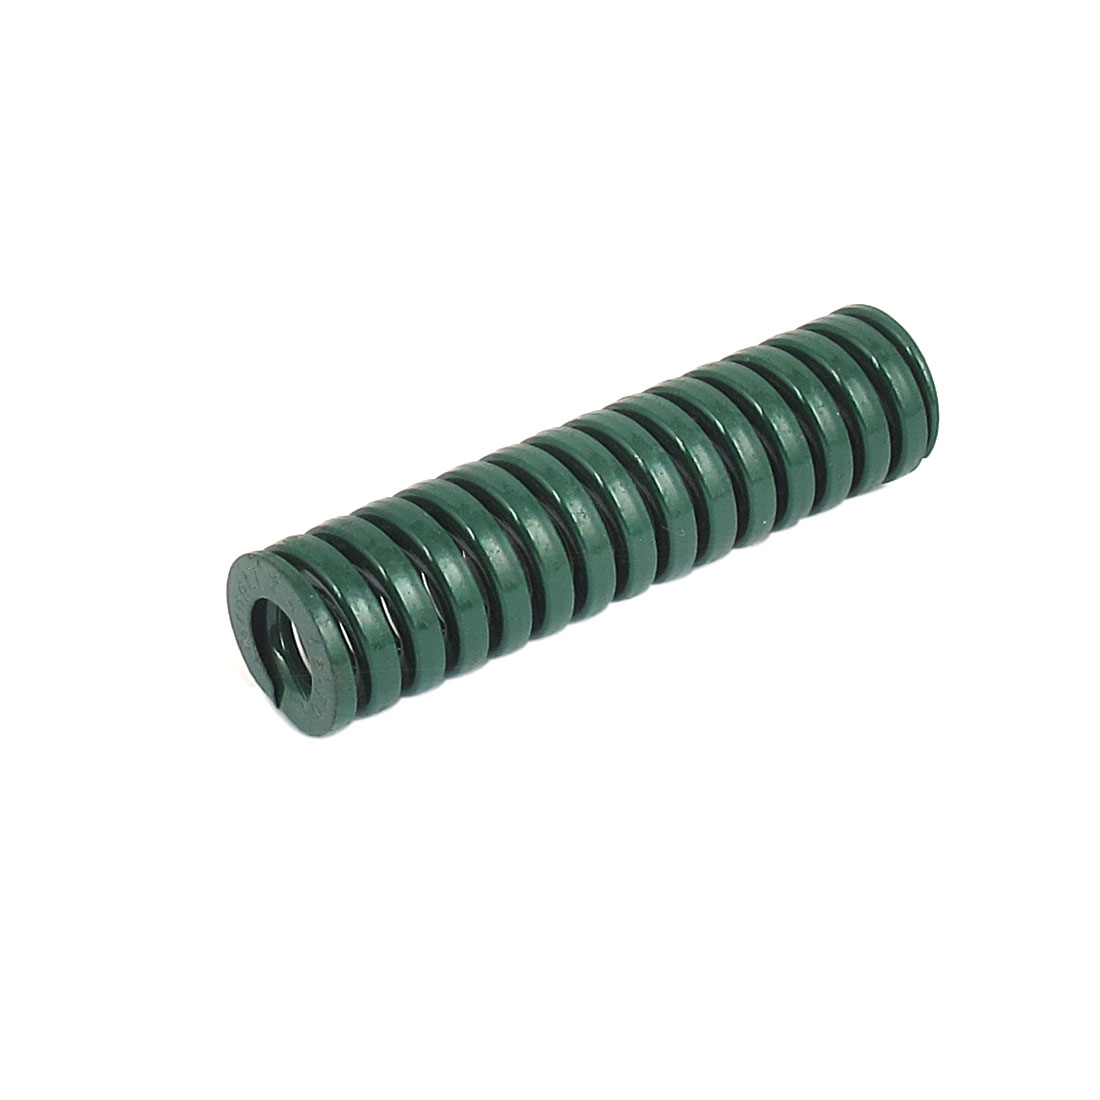 18mmx70mm Chromium Alloy Steel Heavy Load Die Spring Green